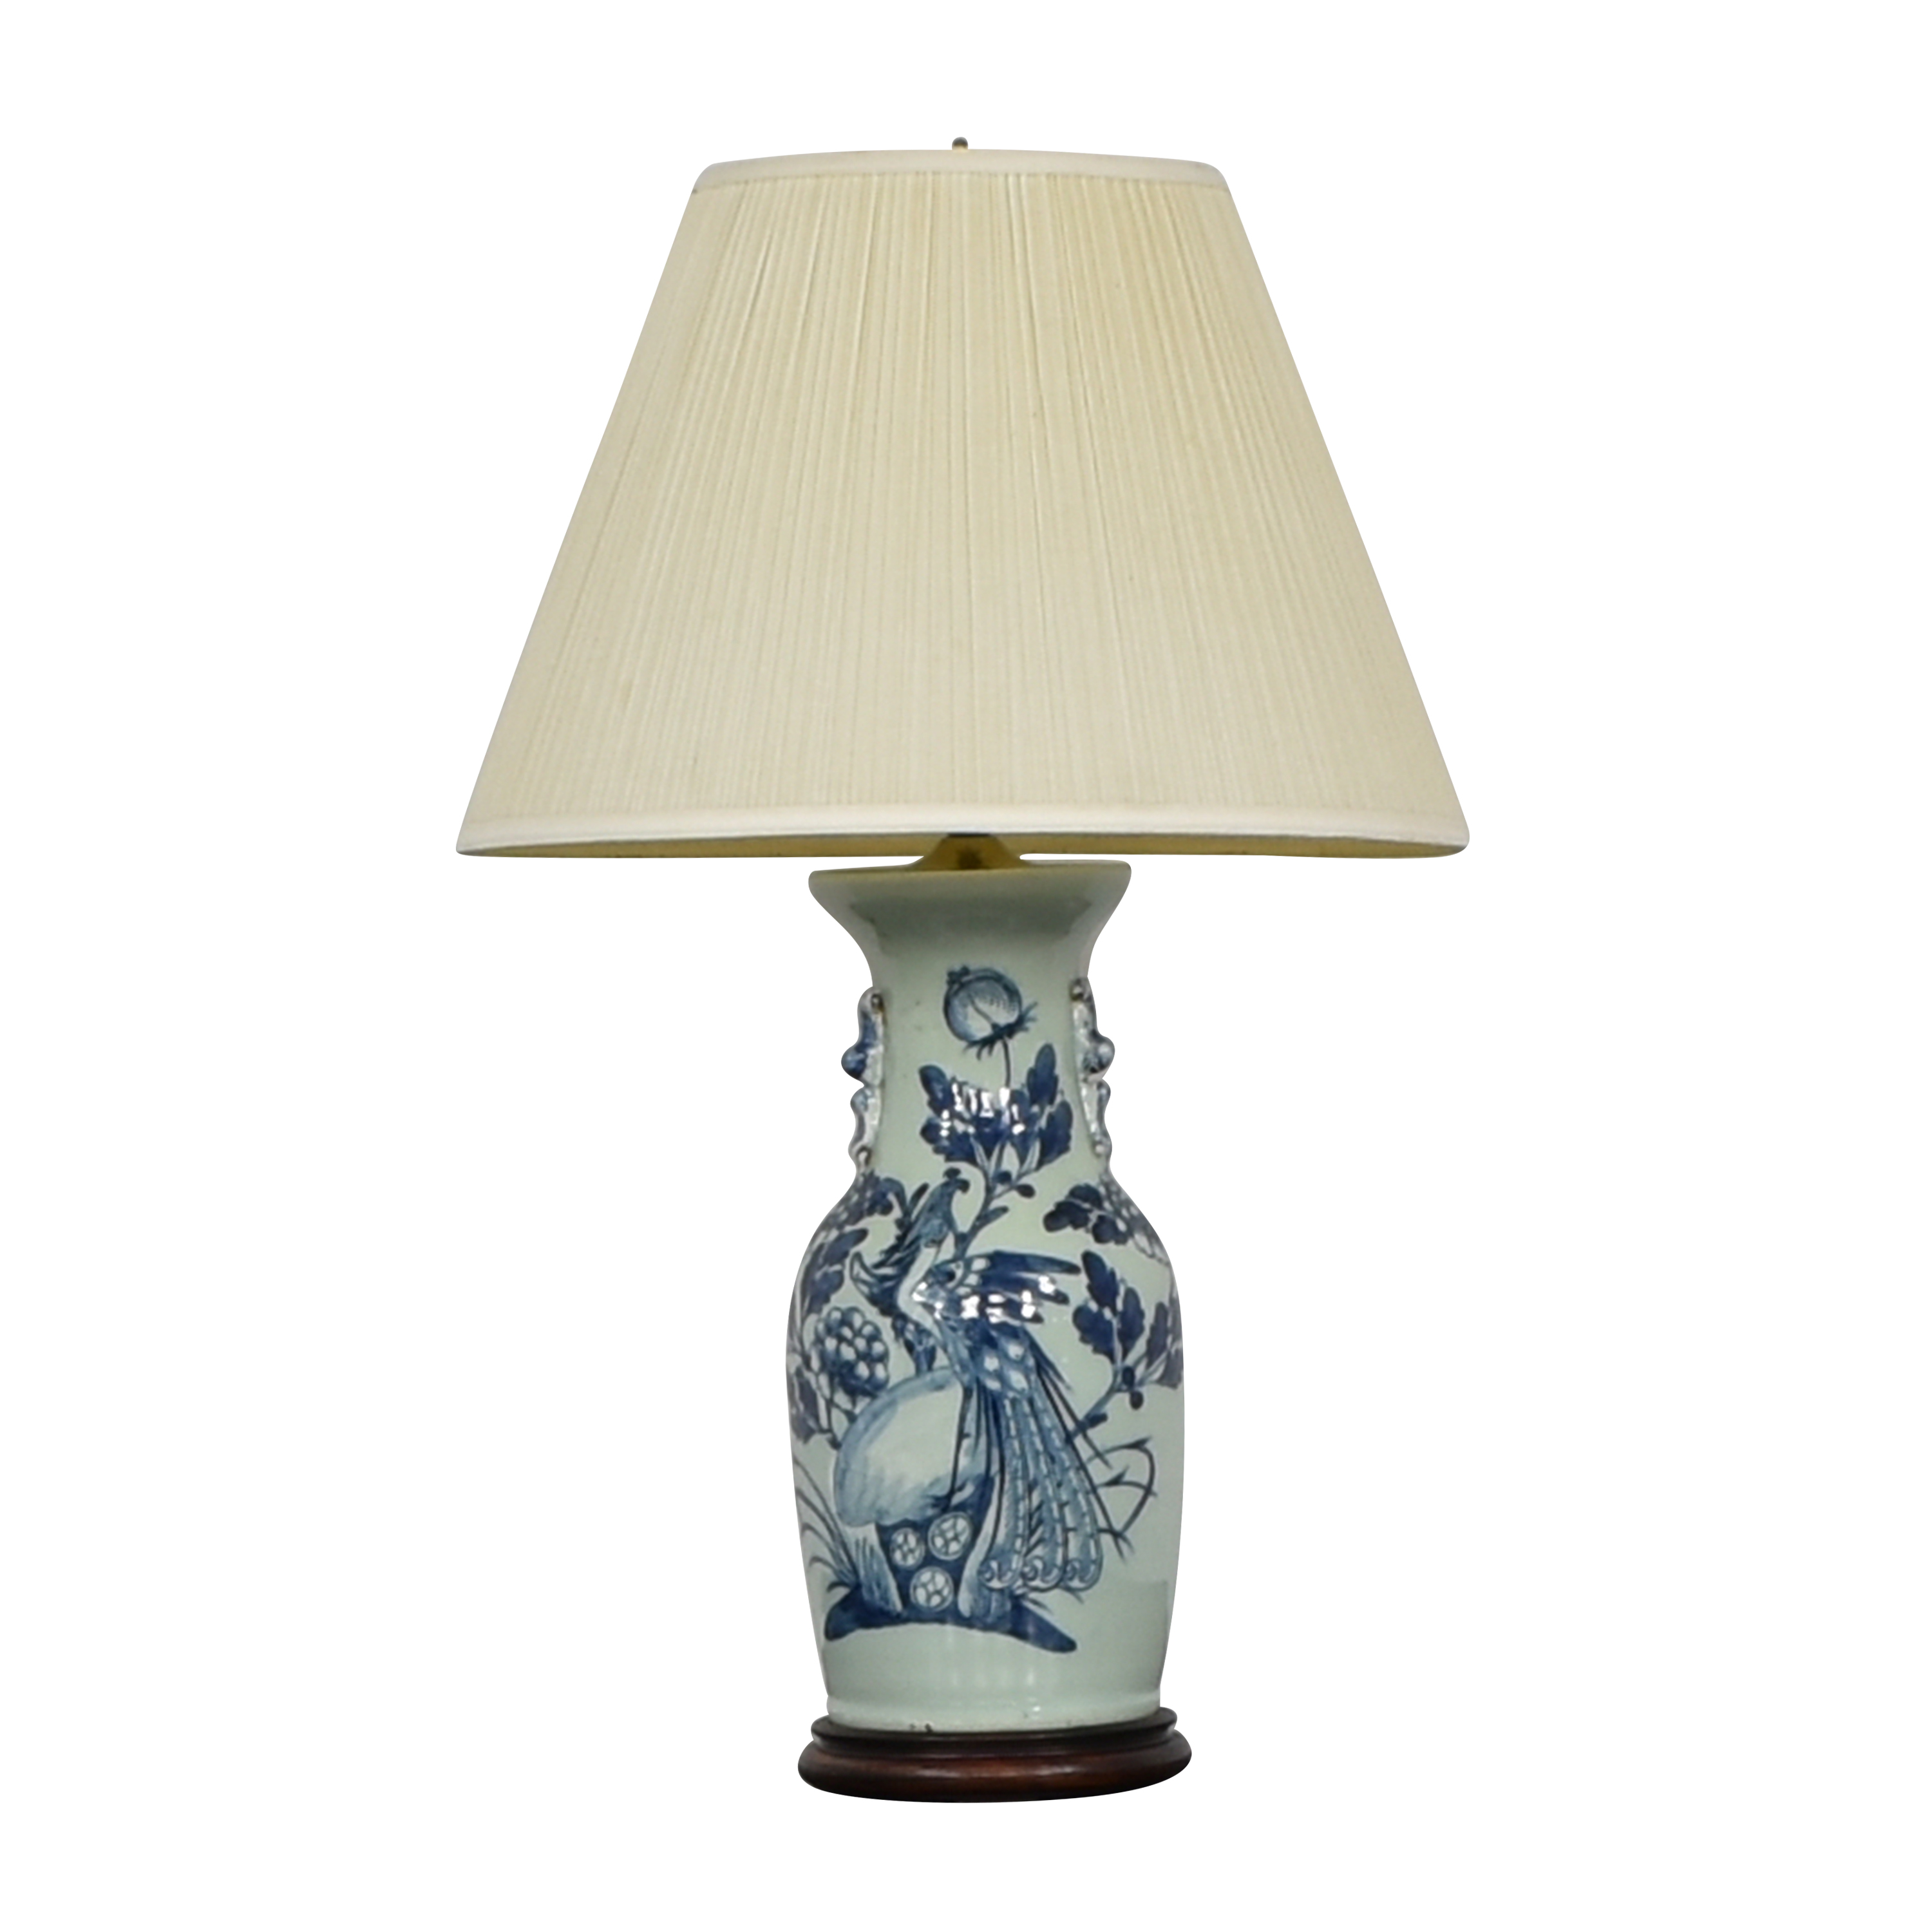 Chinoiserie Vase Lamp second hand